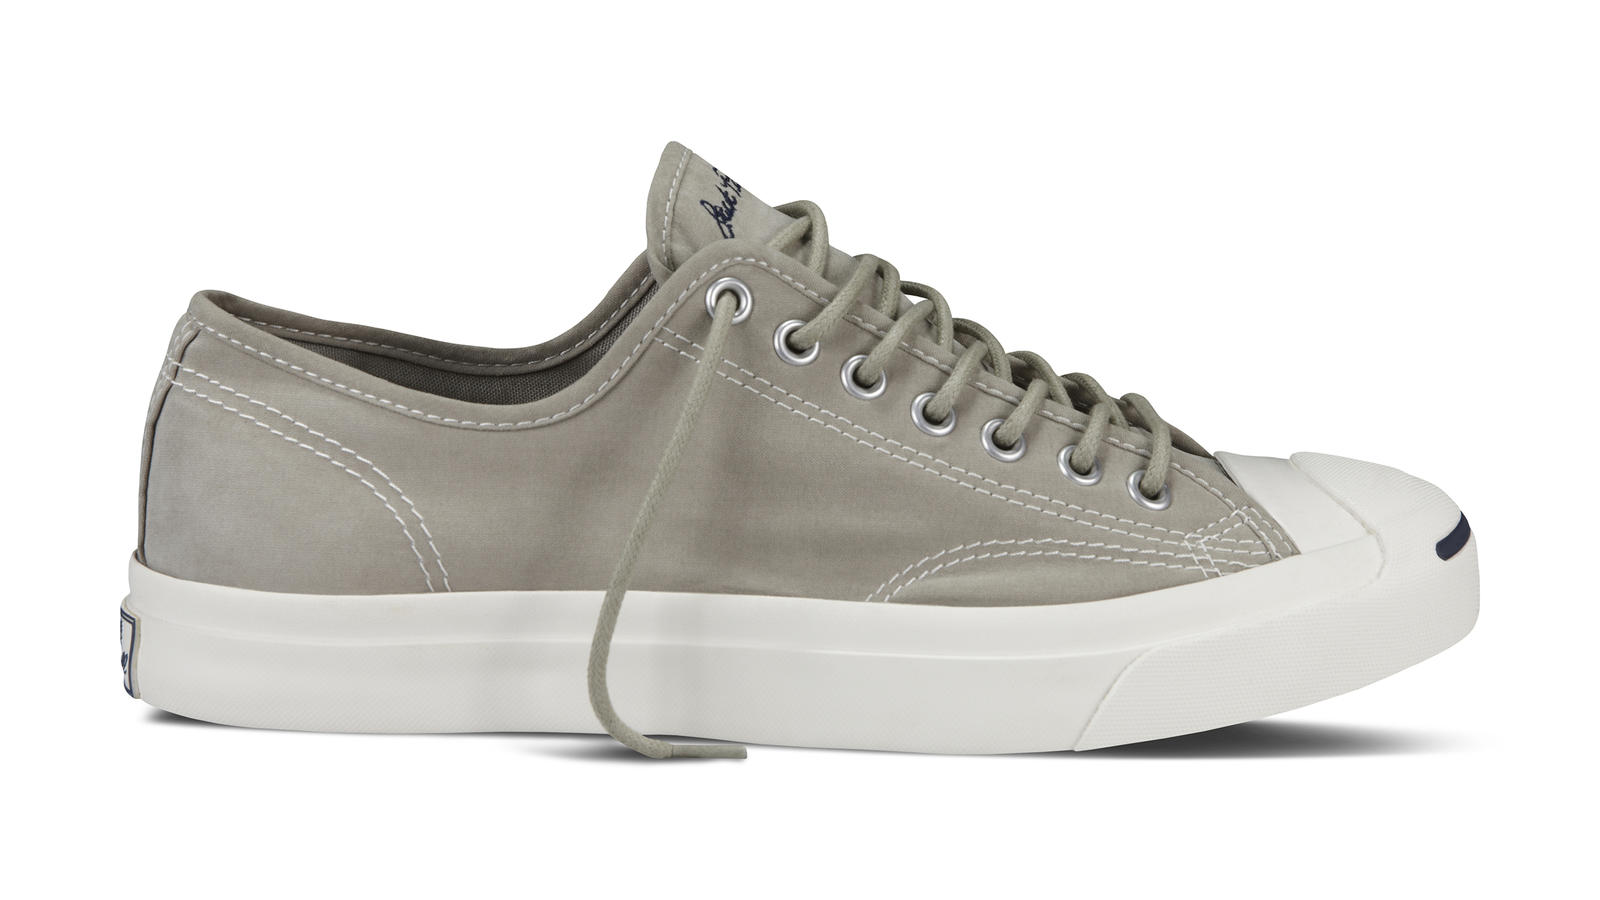 Converse Debuts Fall 2014 Jack Purcell